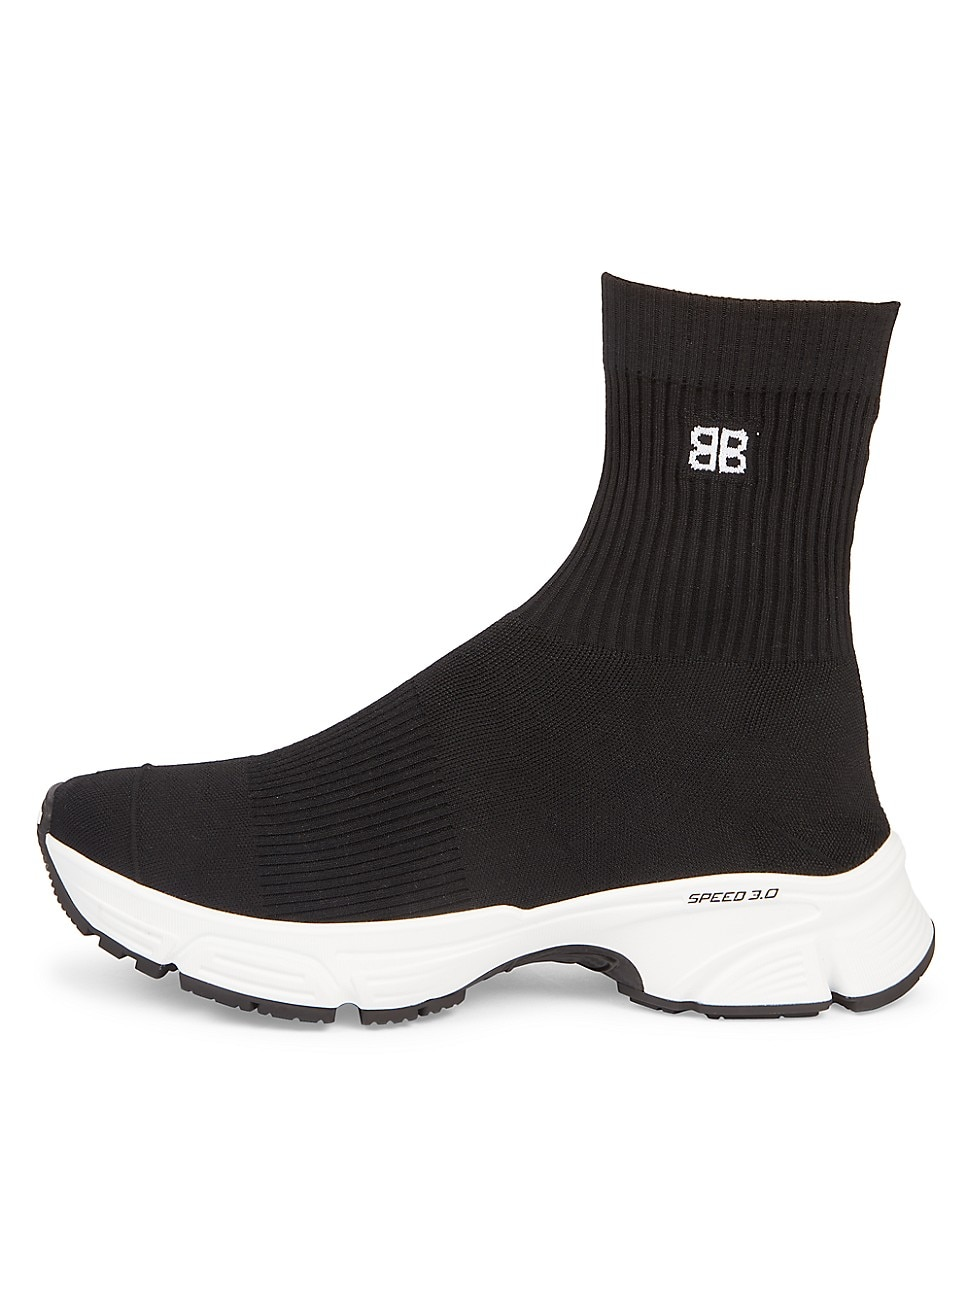 Balenciaga MEN'S SPEED 3.0 SOCK SNEAKERS